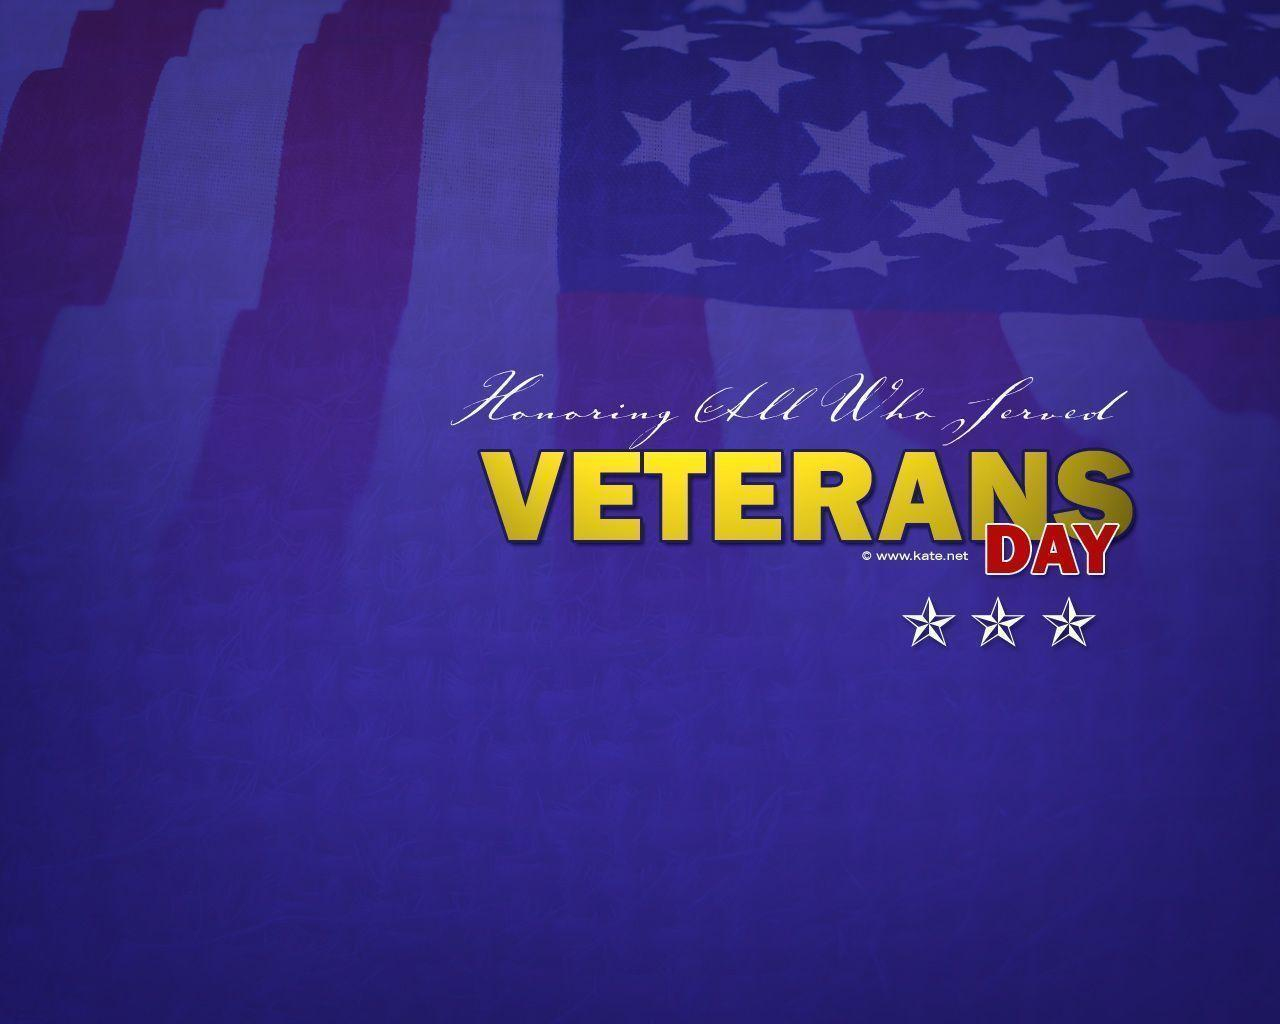 Veterans Day Wallpapers and Facebook Covers, Veterans Day History ...